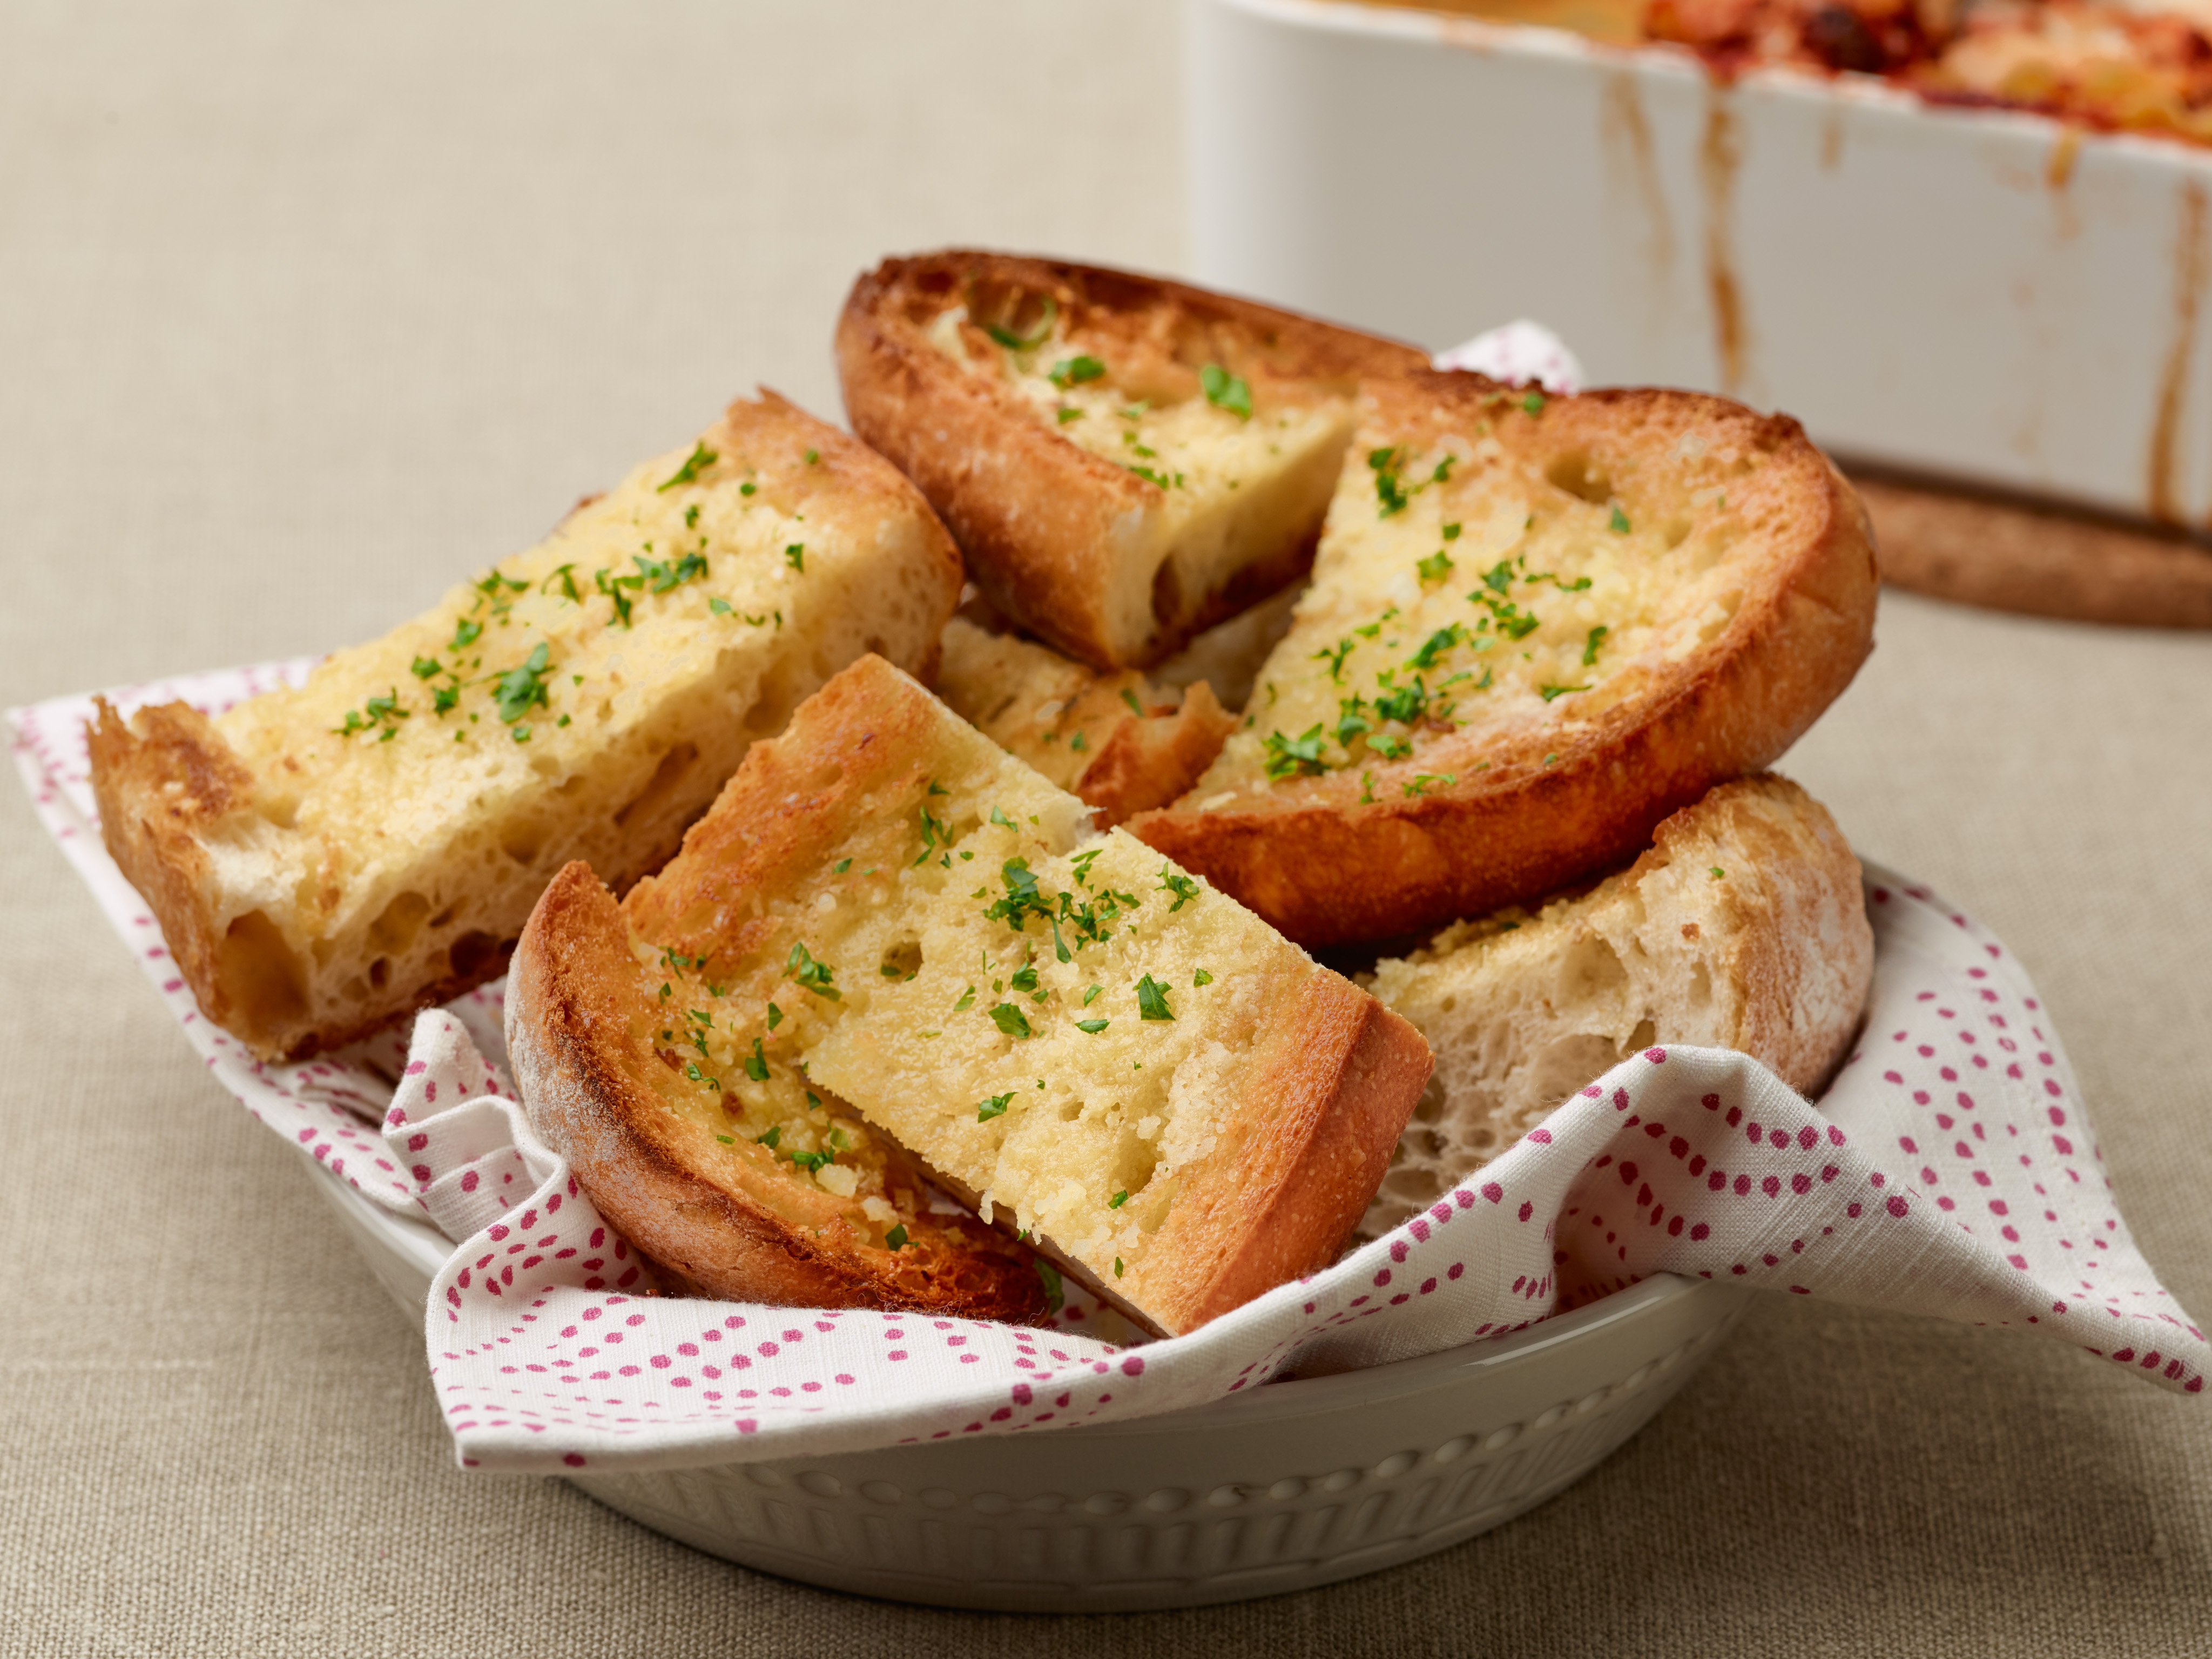 TM1A14F Garlic Bread s4x3 Someone Photoshopped Garlic Bread Into The Force Awakens And Its Just Brilliant